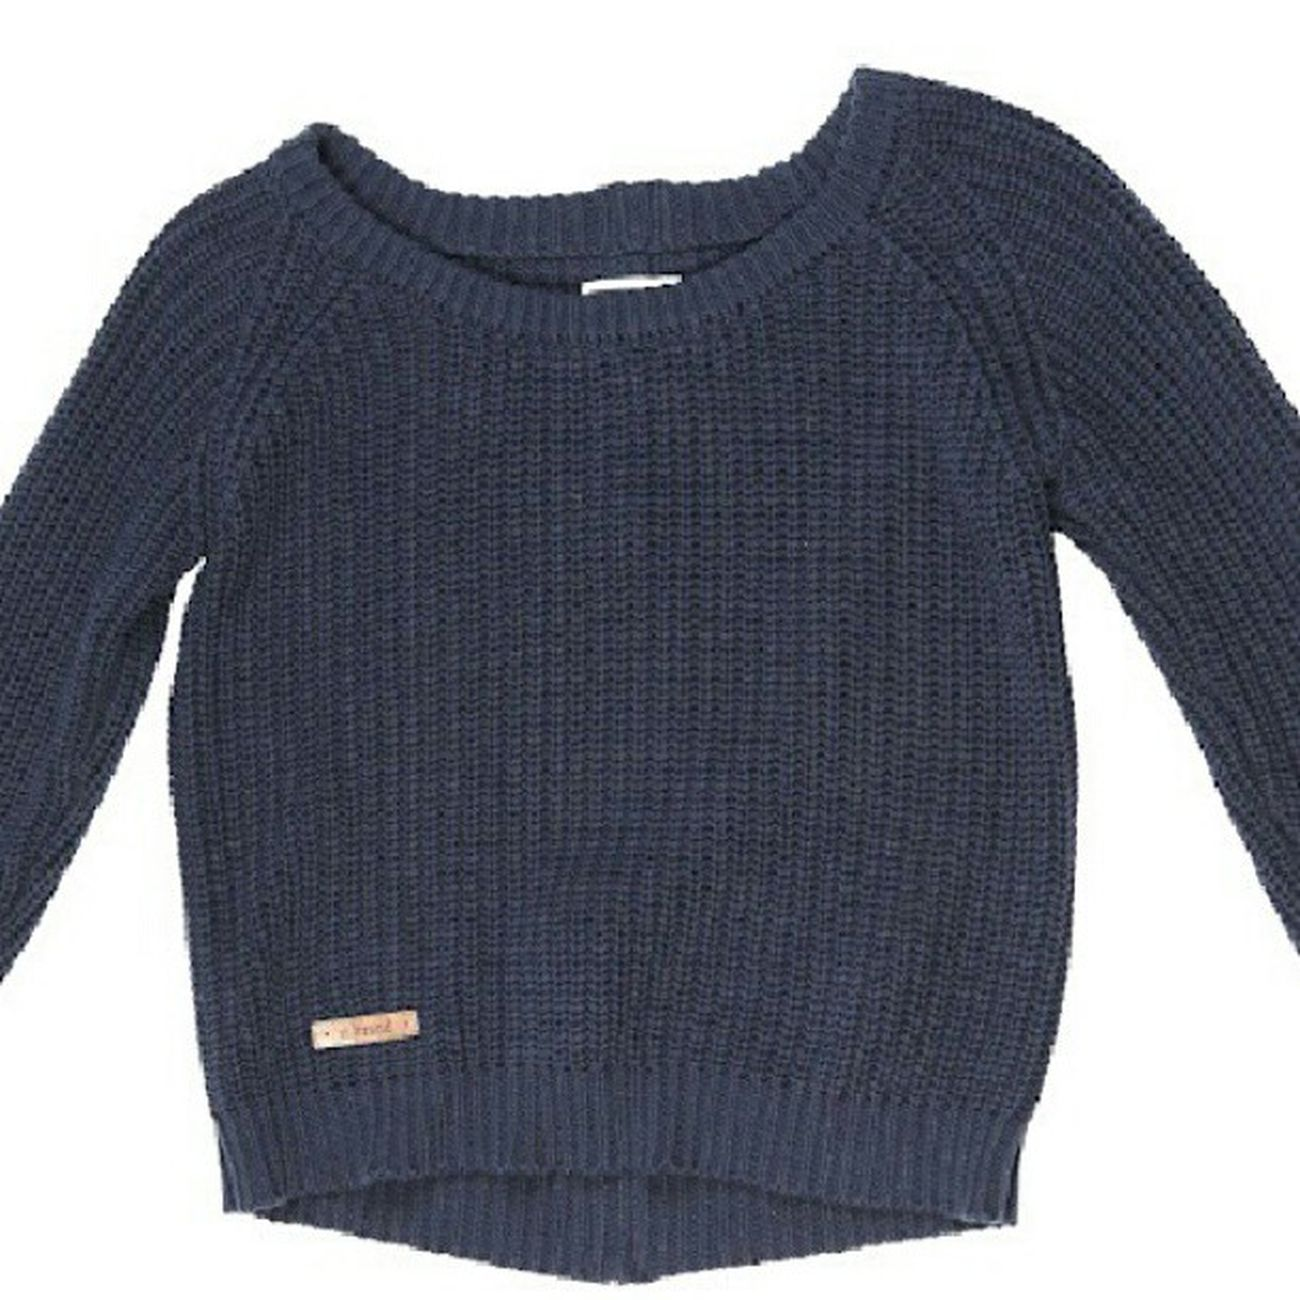 Dbrand womenKnitted  Season  Favourites Fashion Mode 2006 Sweden Blogg